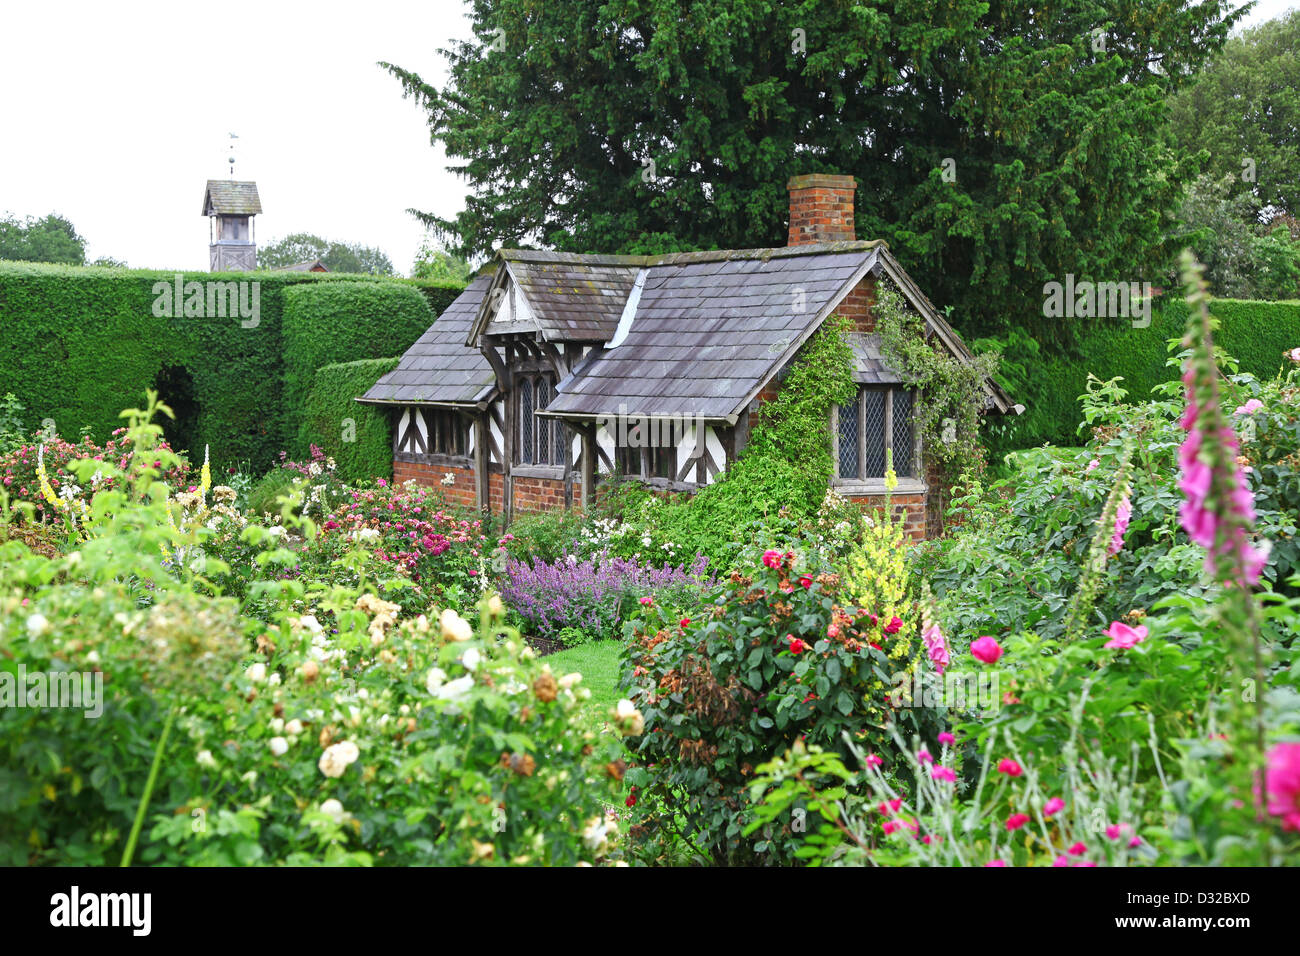 The half-timbered building known as the Tea Cottage in the Shrub Rose Garden at Arley Hall gardens Cheshire England - Stock Image